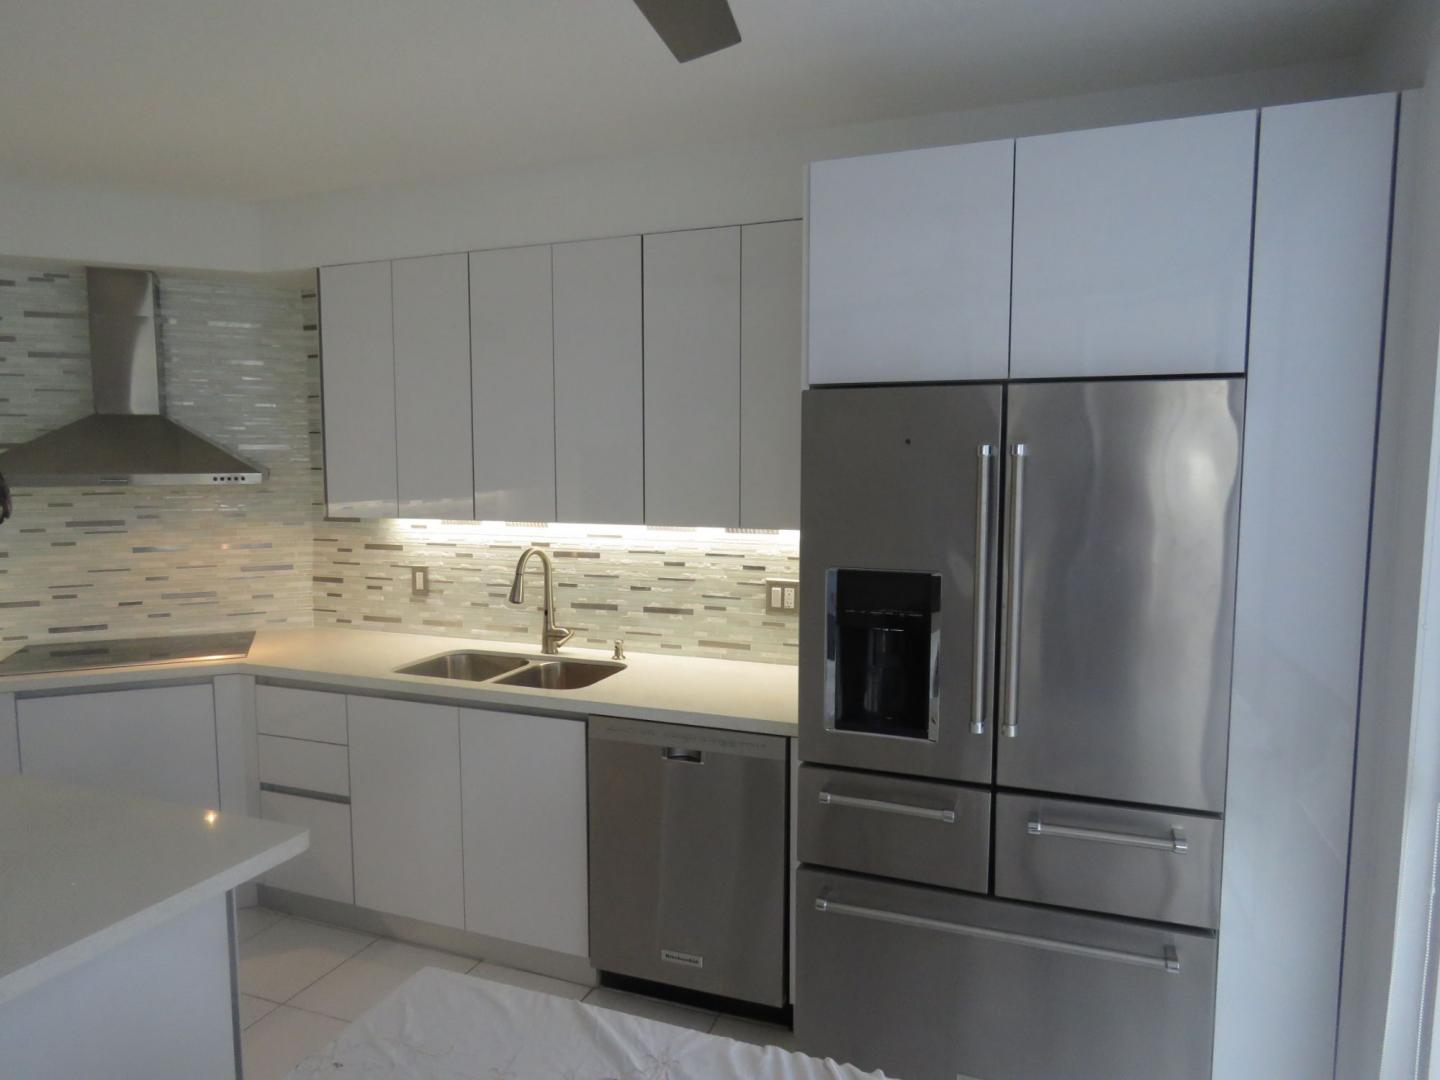 Kitchens Cabinets Manufacturer - South Florida, Kendall ...